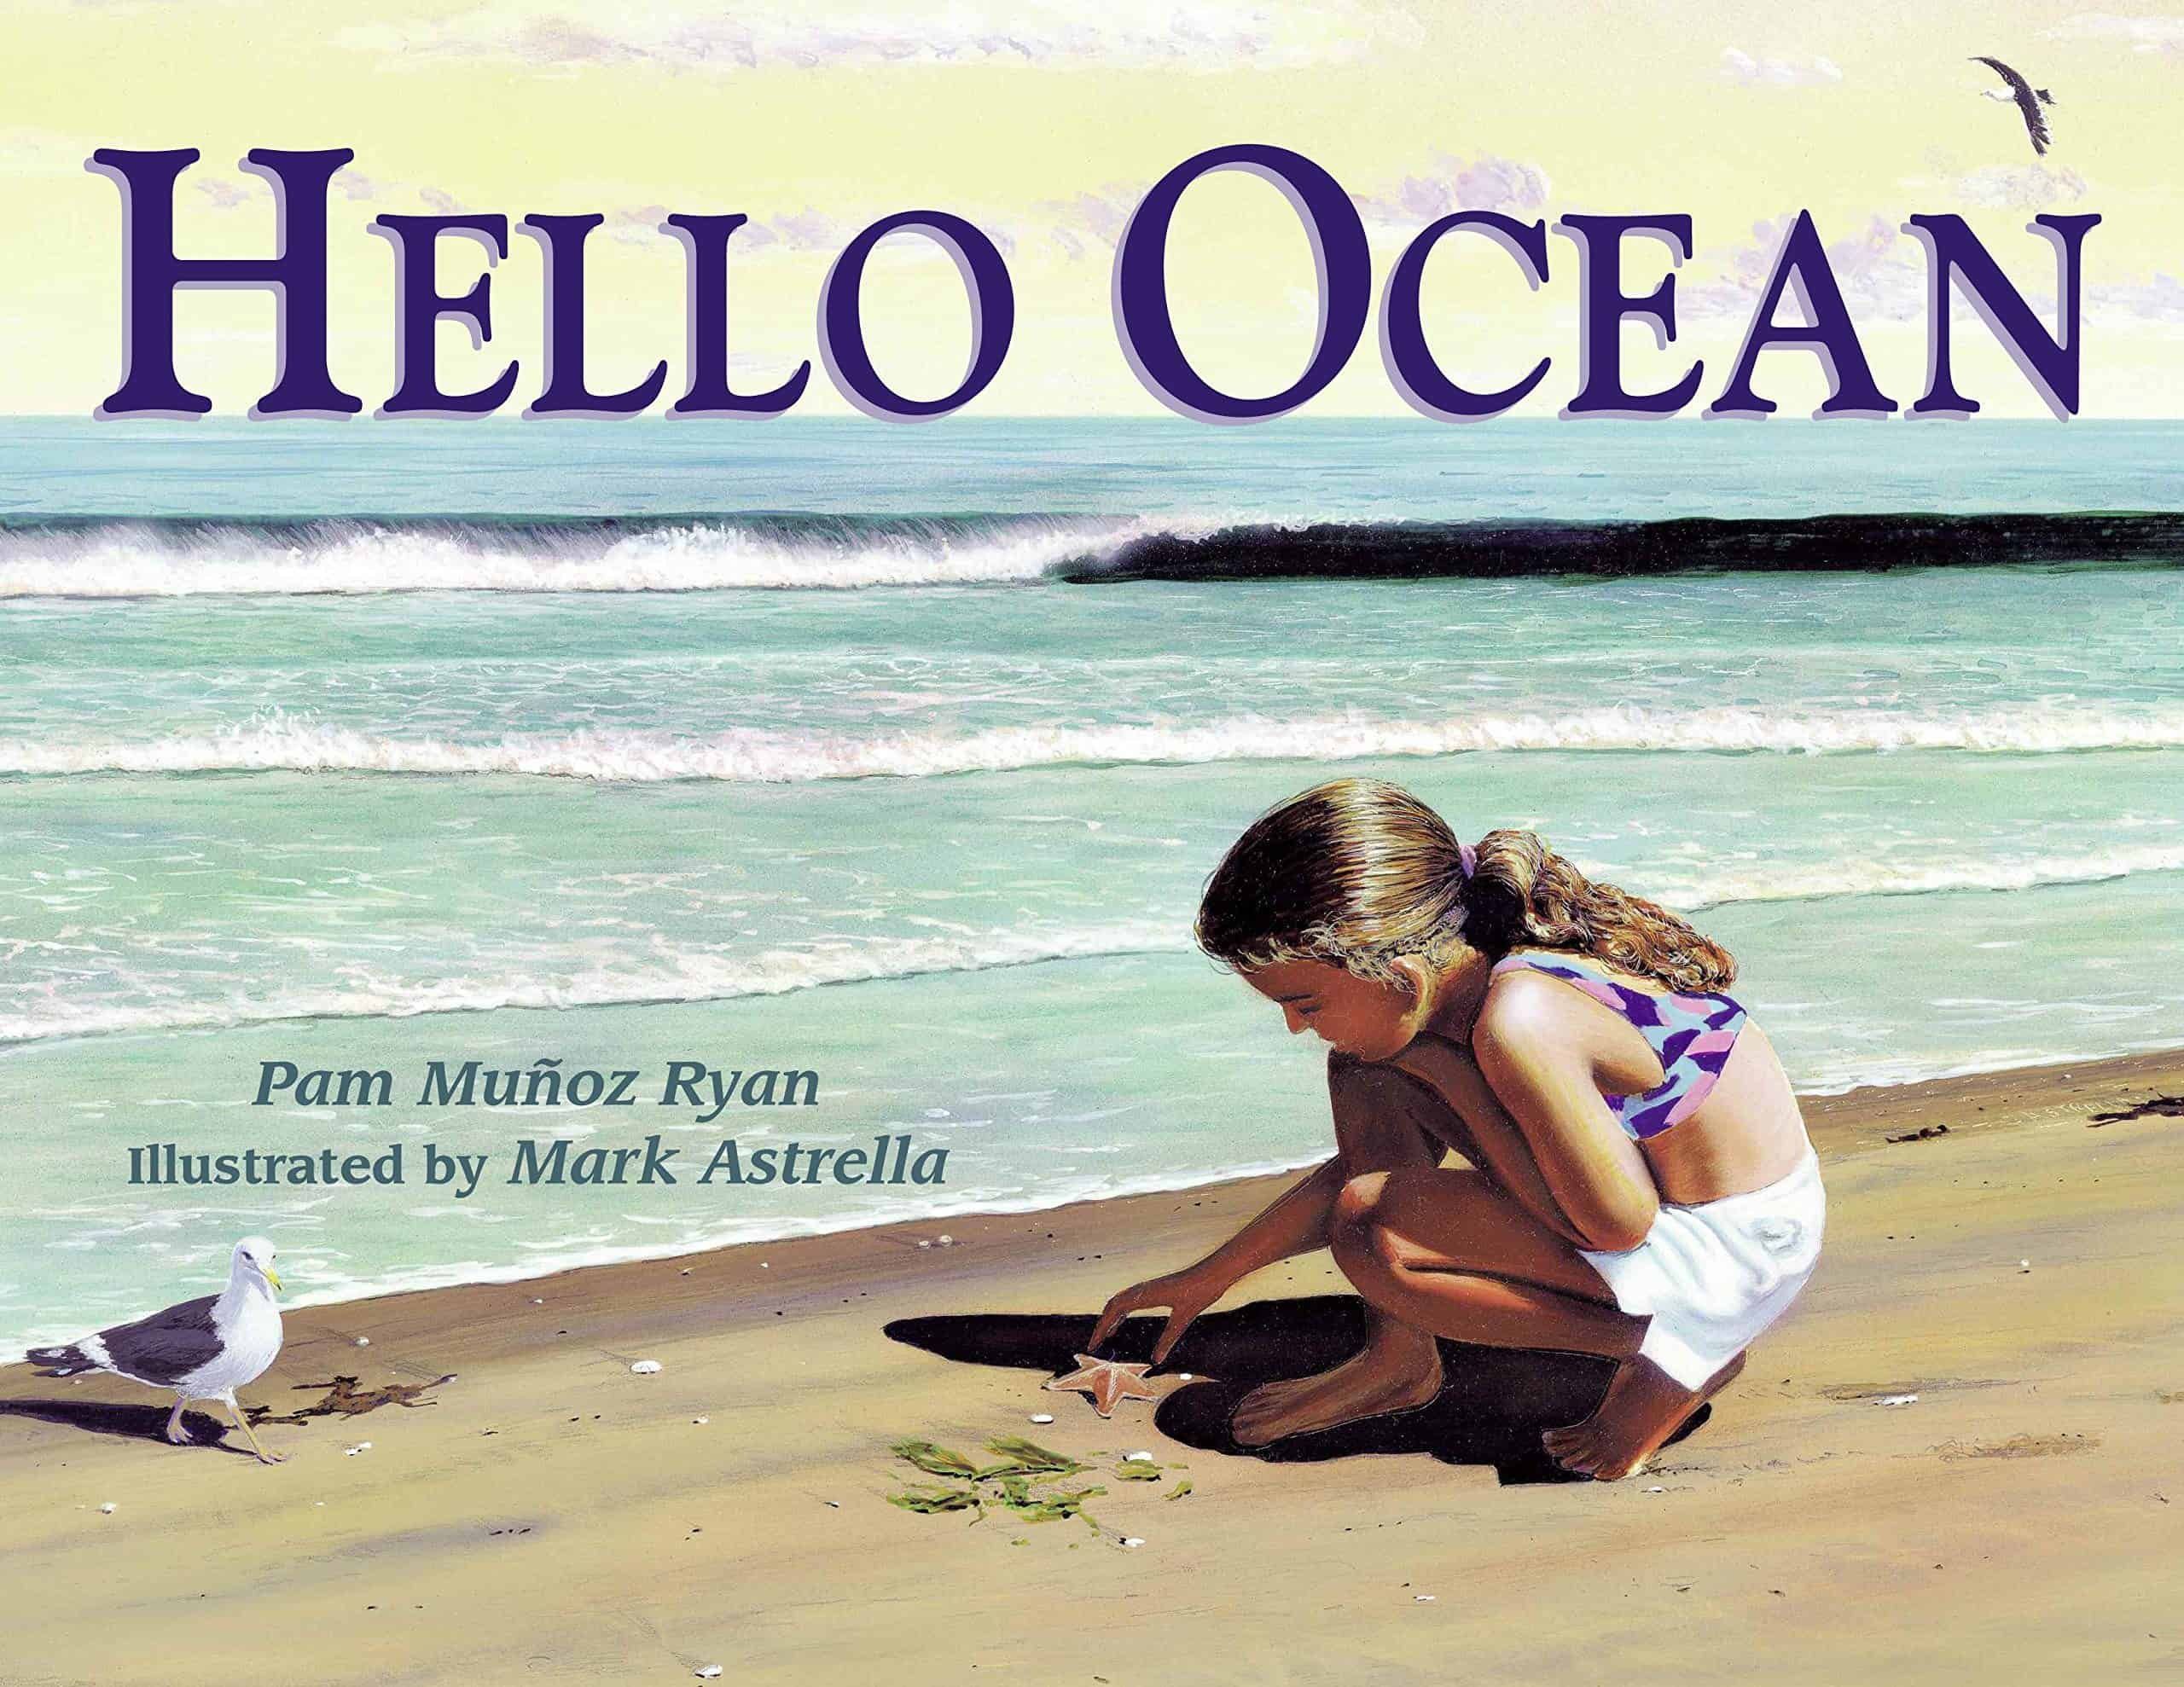 Voice is one writing skill that directly connects to reading. Hello Ocean is a wonderful choice for modeling imagery. The words chosen are so perfect